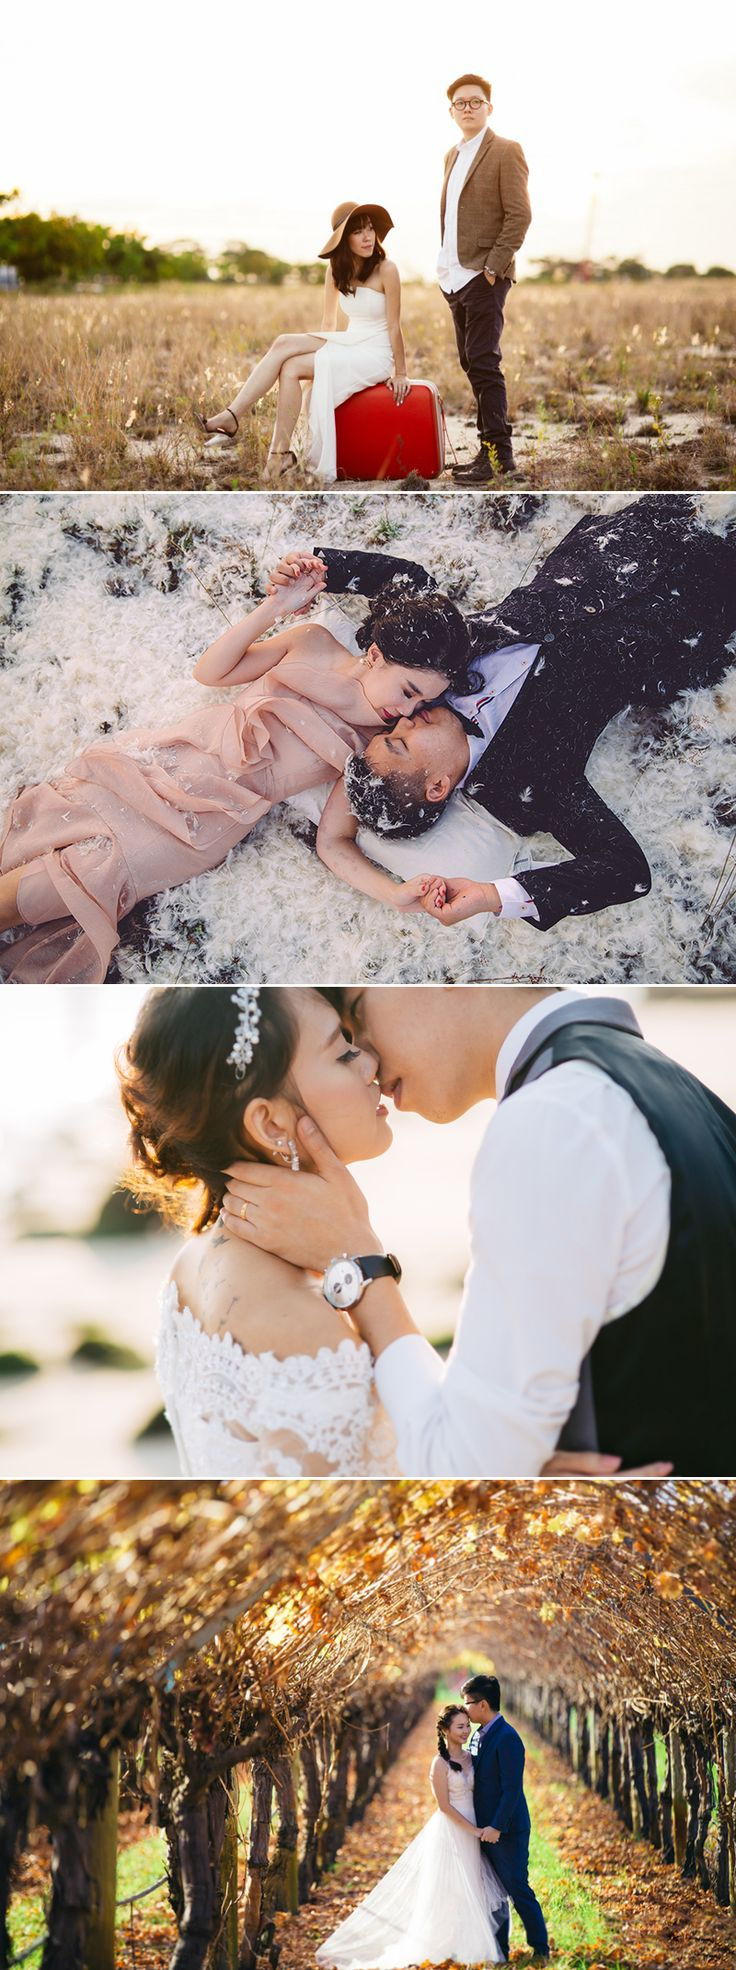 5 Destination Photographers You Will Love For Your Engagement & Pre-Wedding Shoot!